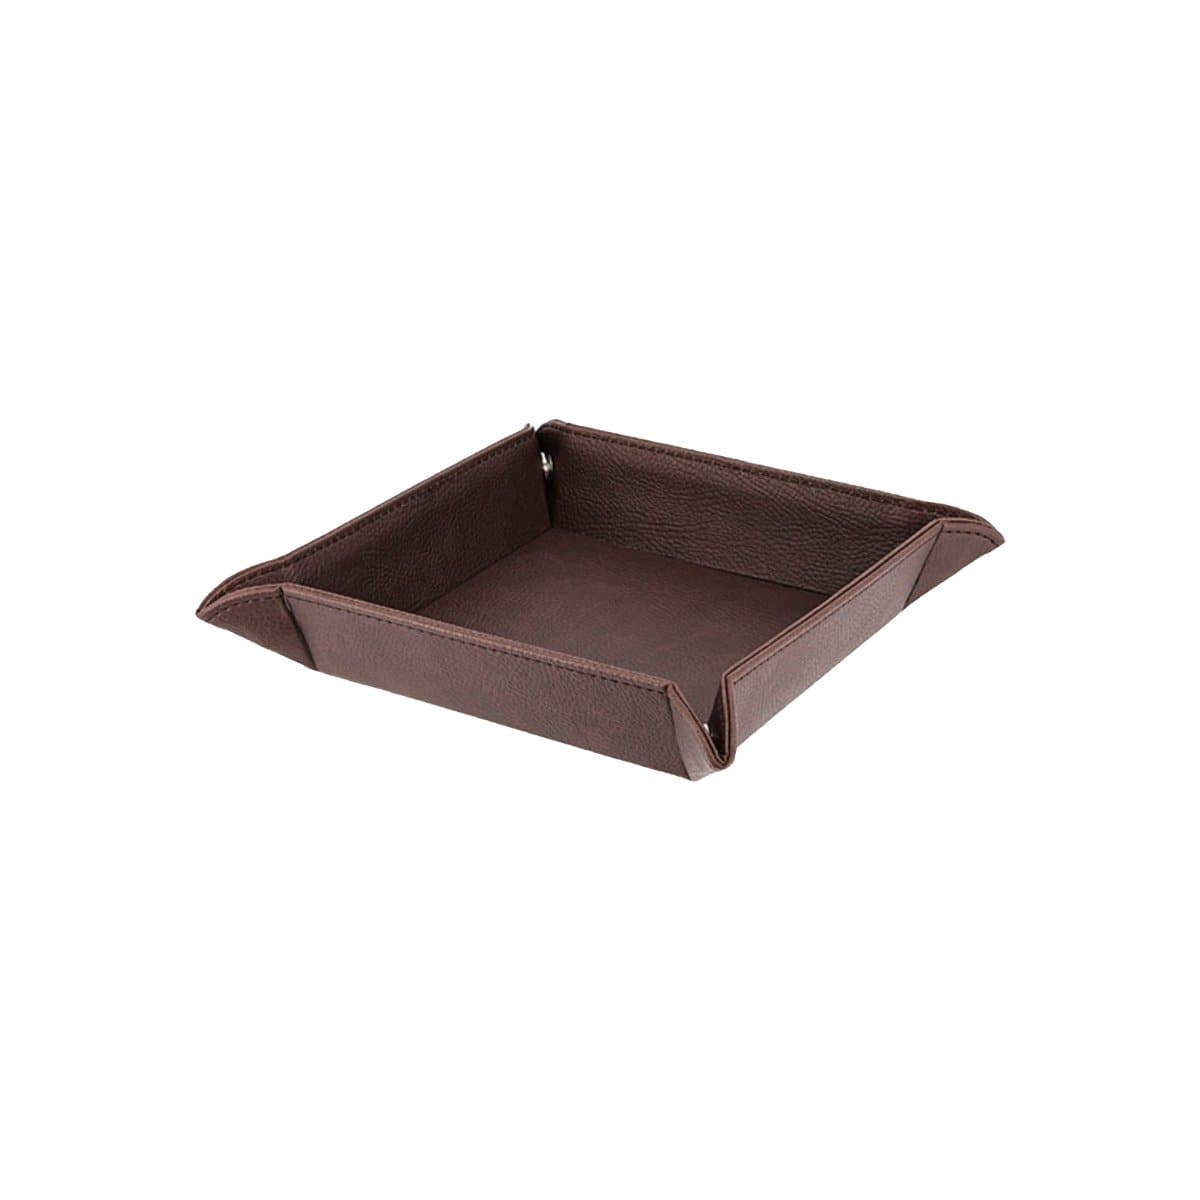 Konrad S. Coin Tidy Tray, 14 x 14 x 4cm, PU Leather, Brown